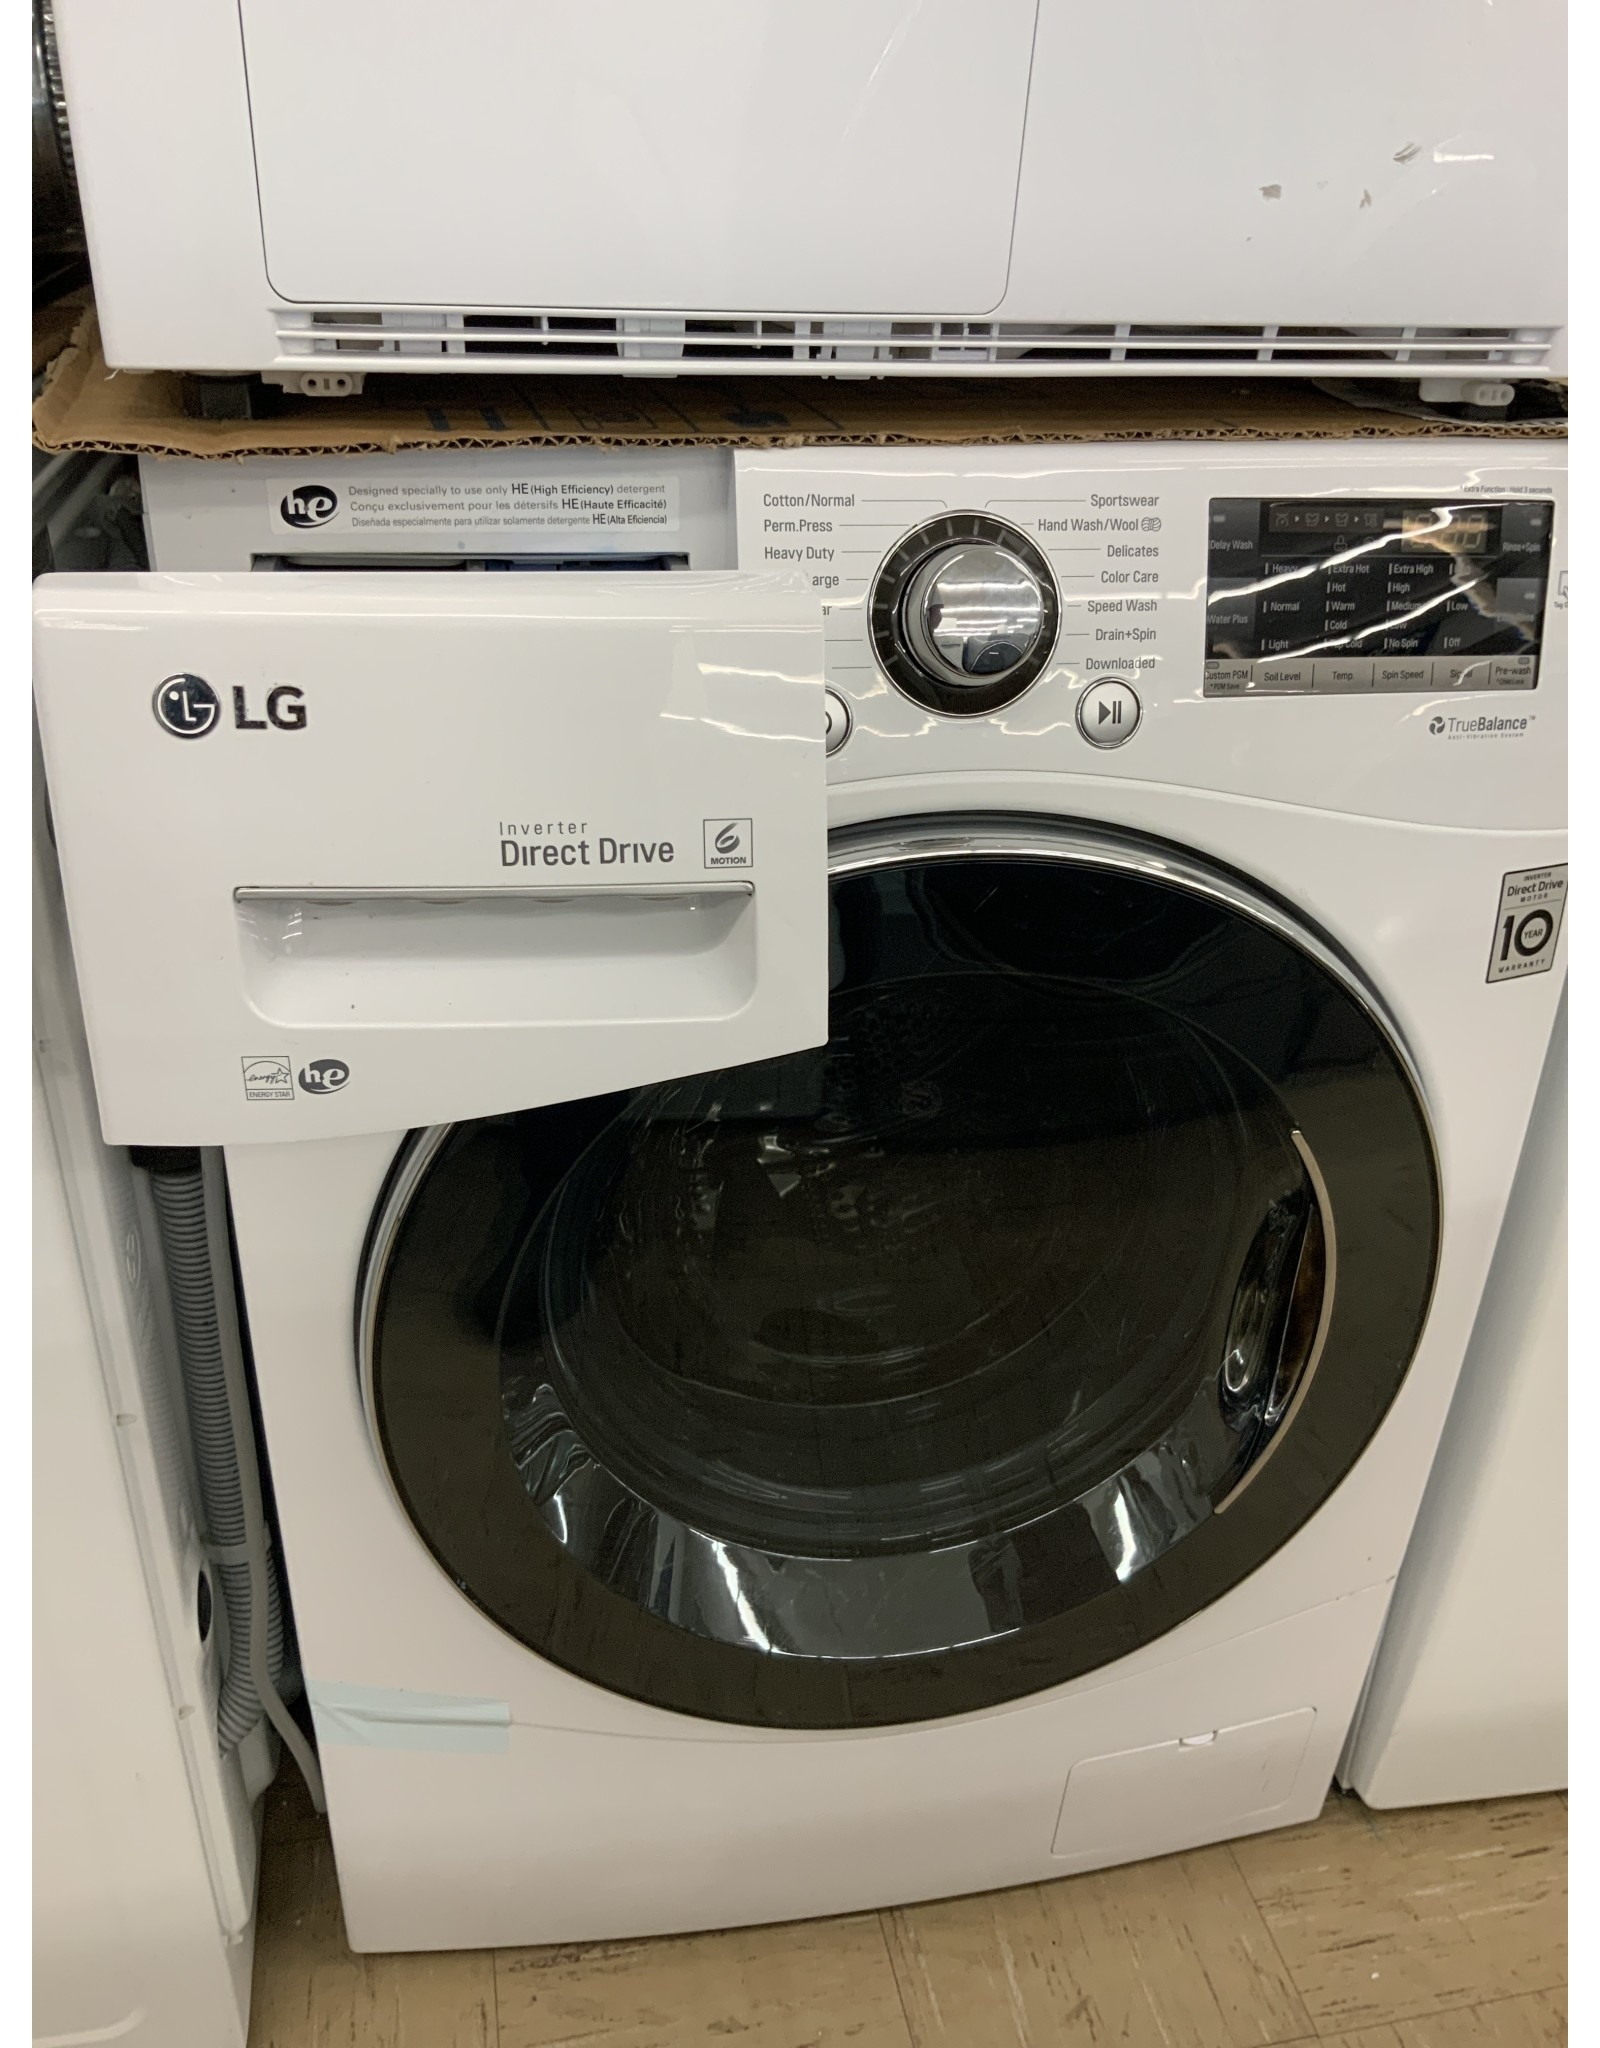 LG Electronics DLEC888W 4.2 cu. ft. White Compact Stackable Front Load Electric Ventless Dryer with Sensor Dry